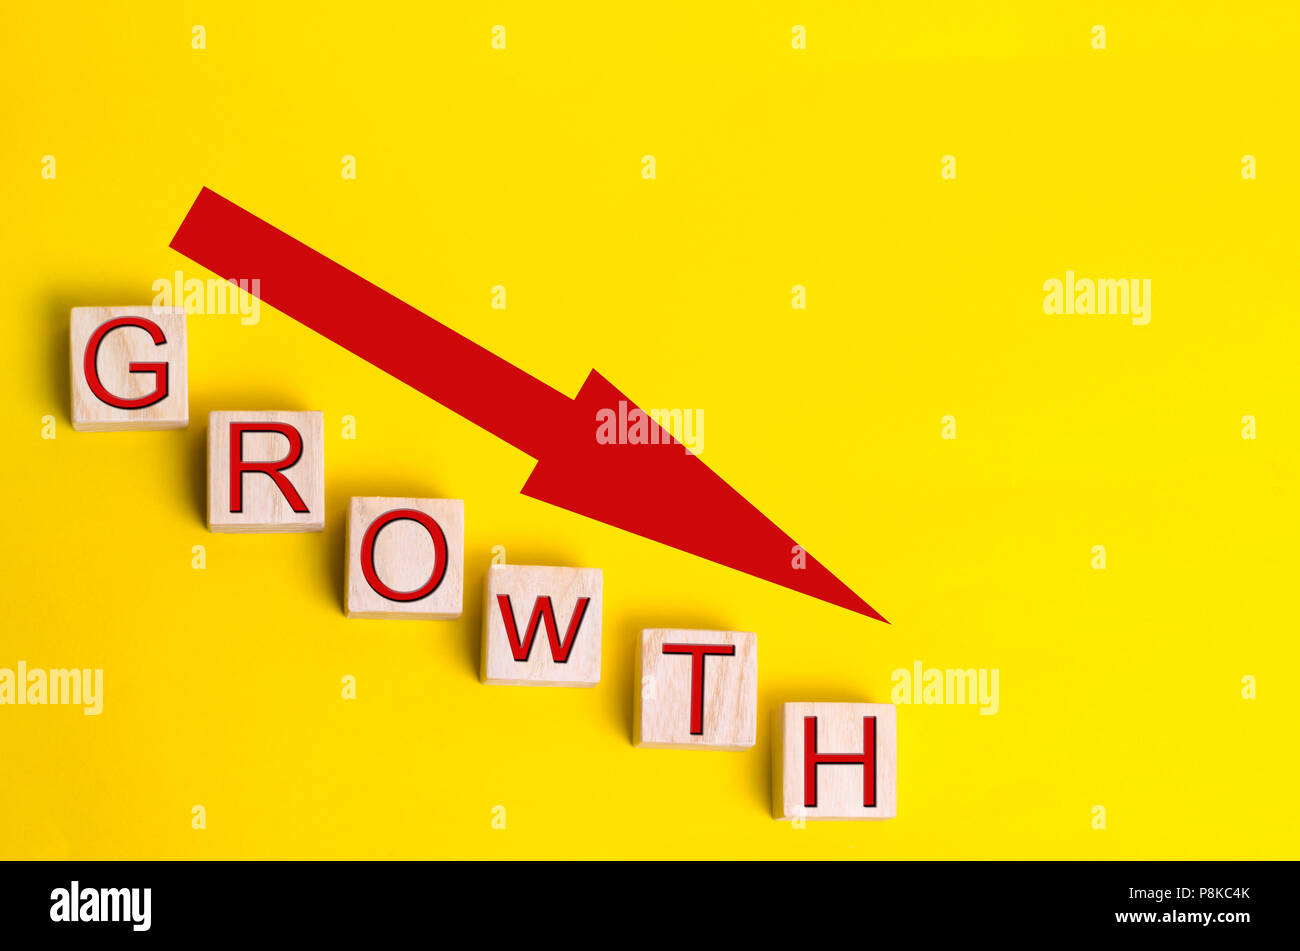 unprofitable business. decrease in growth, of sales and profit, bankruptcy business concept, financial crisis in company - Stock Image